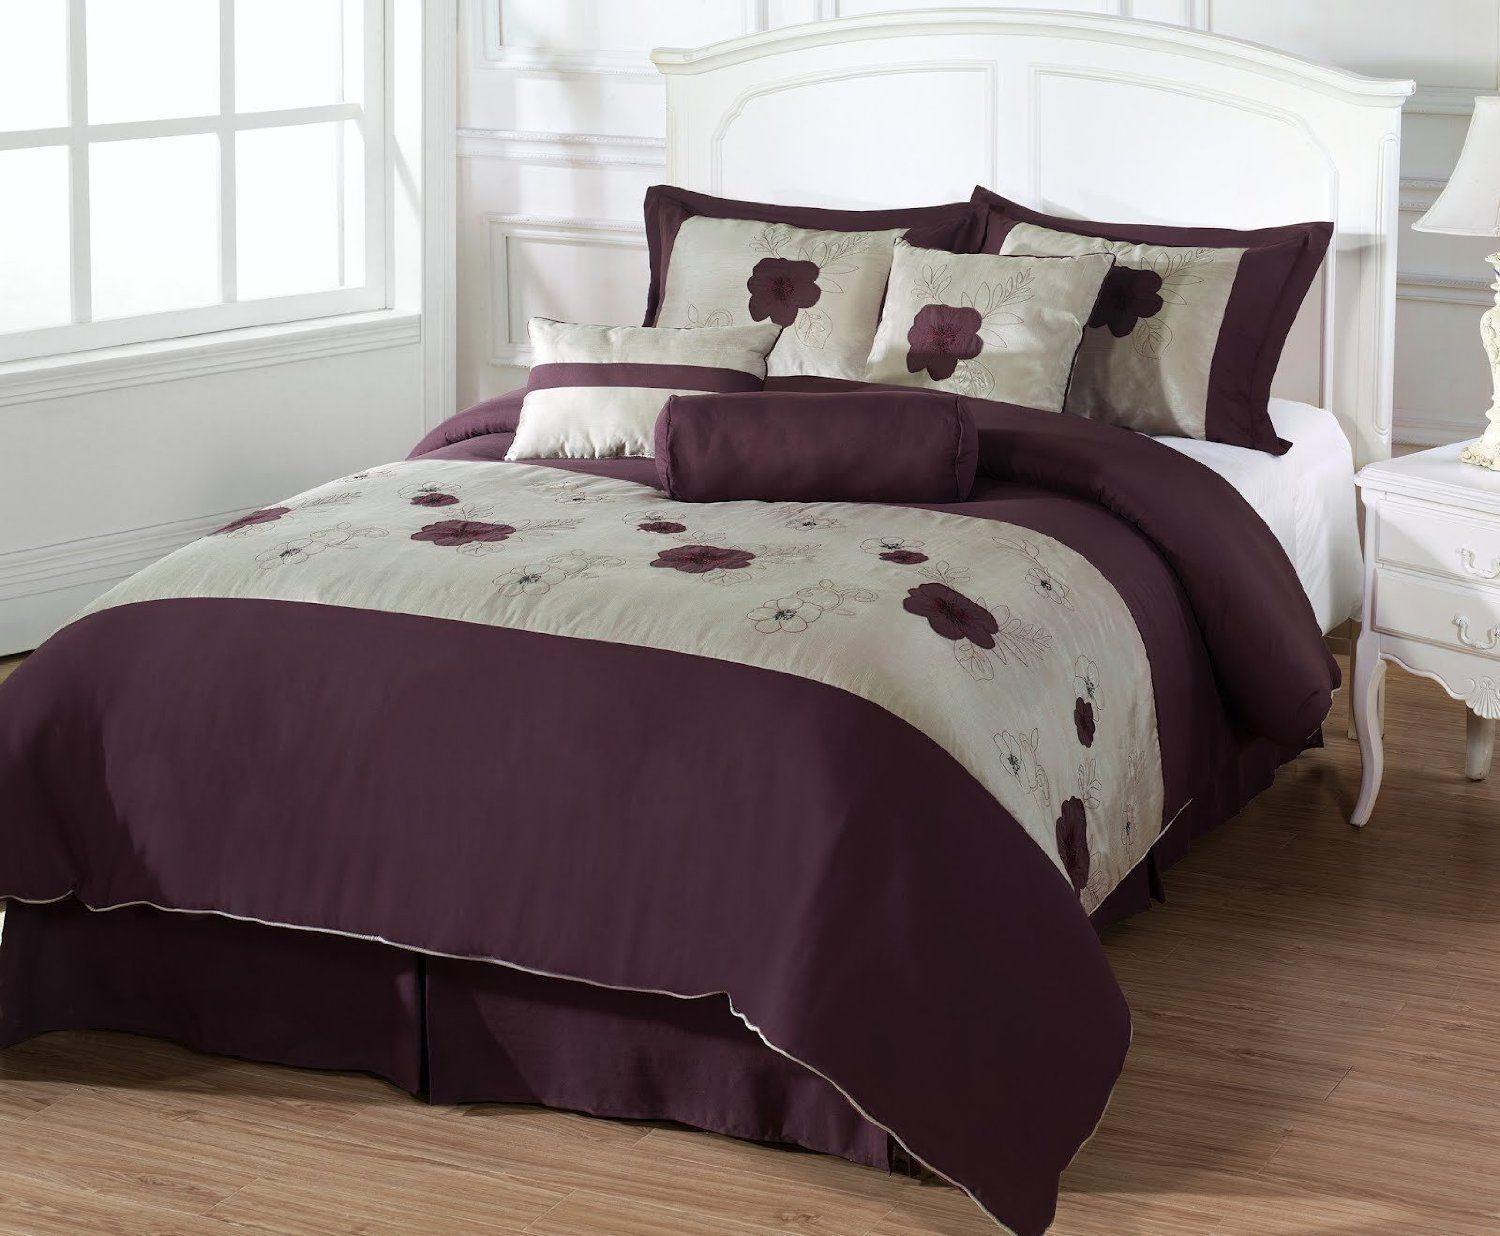 Leila King Size 7 Piece Comforter Set Applique Embroidery Purple Flower Coffee Bed